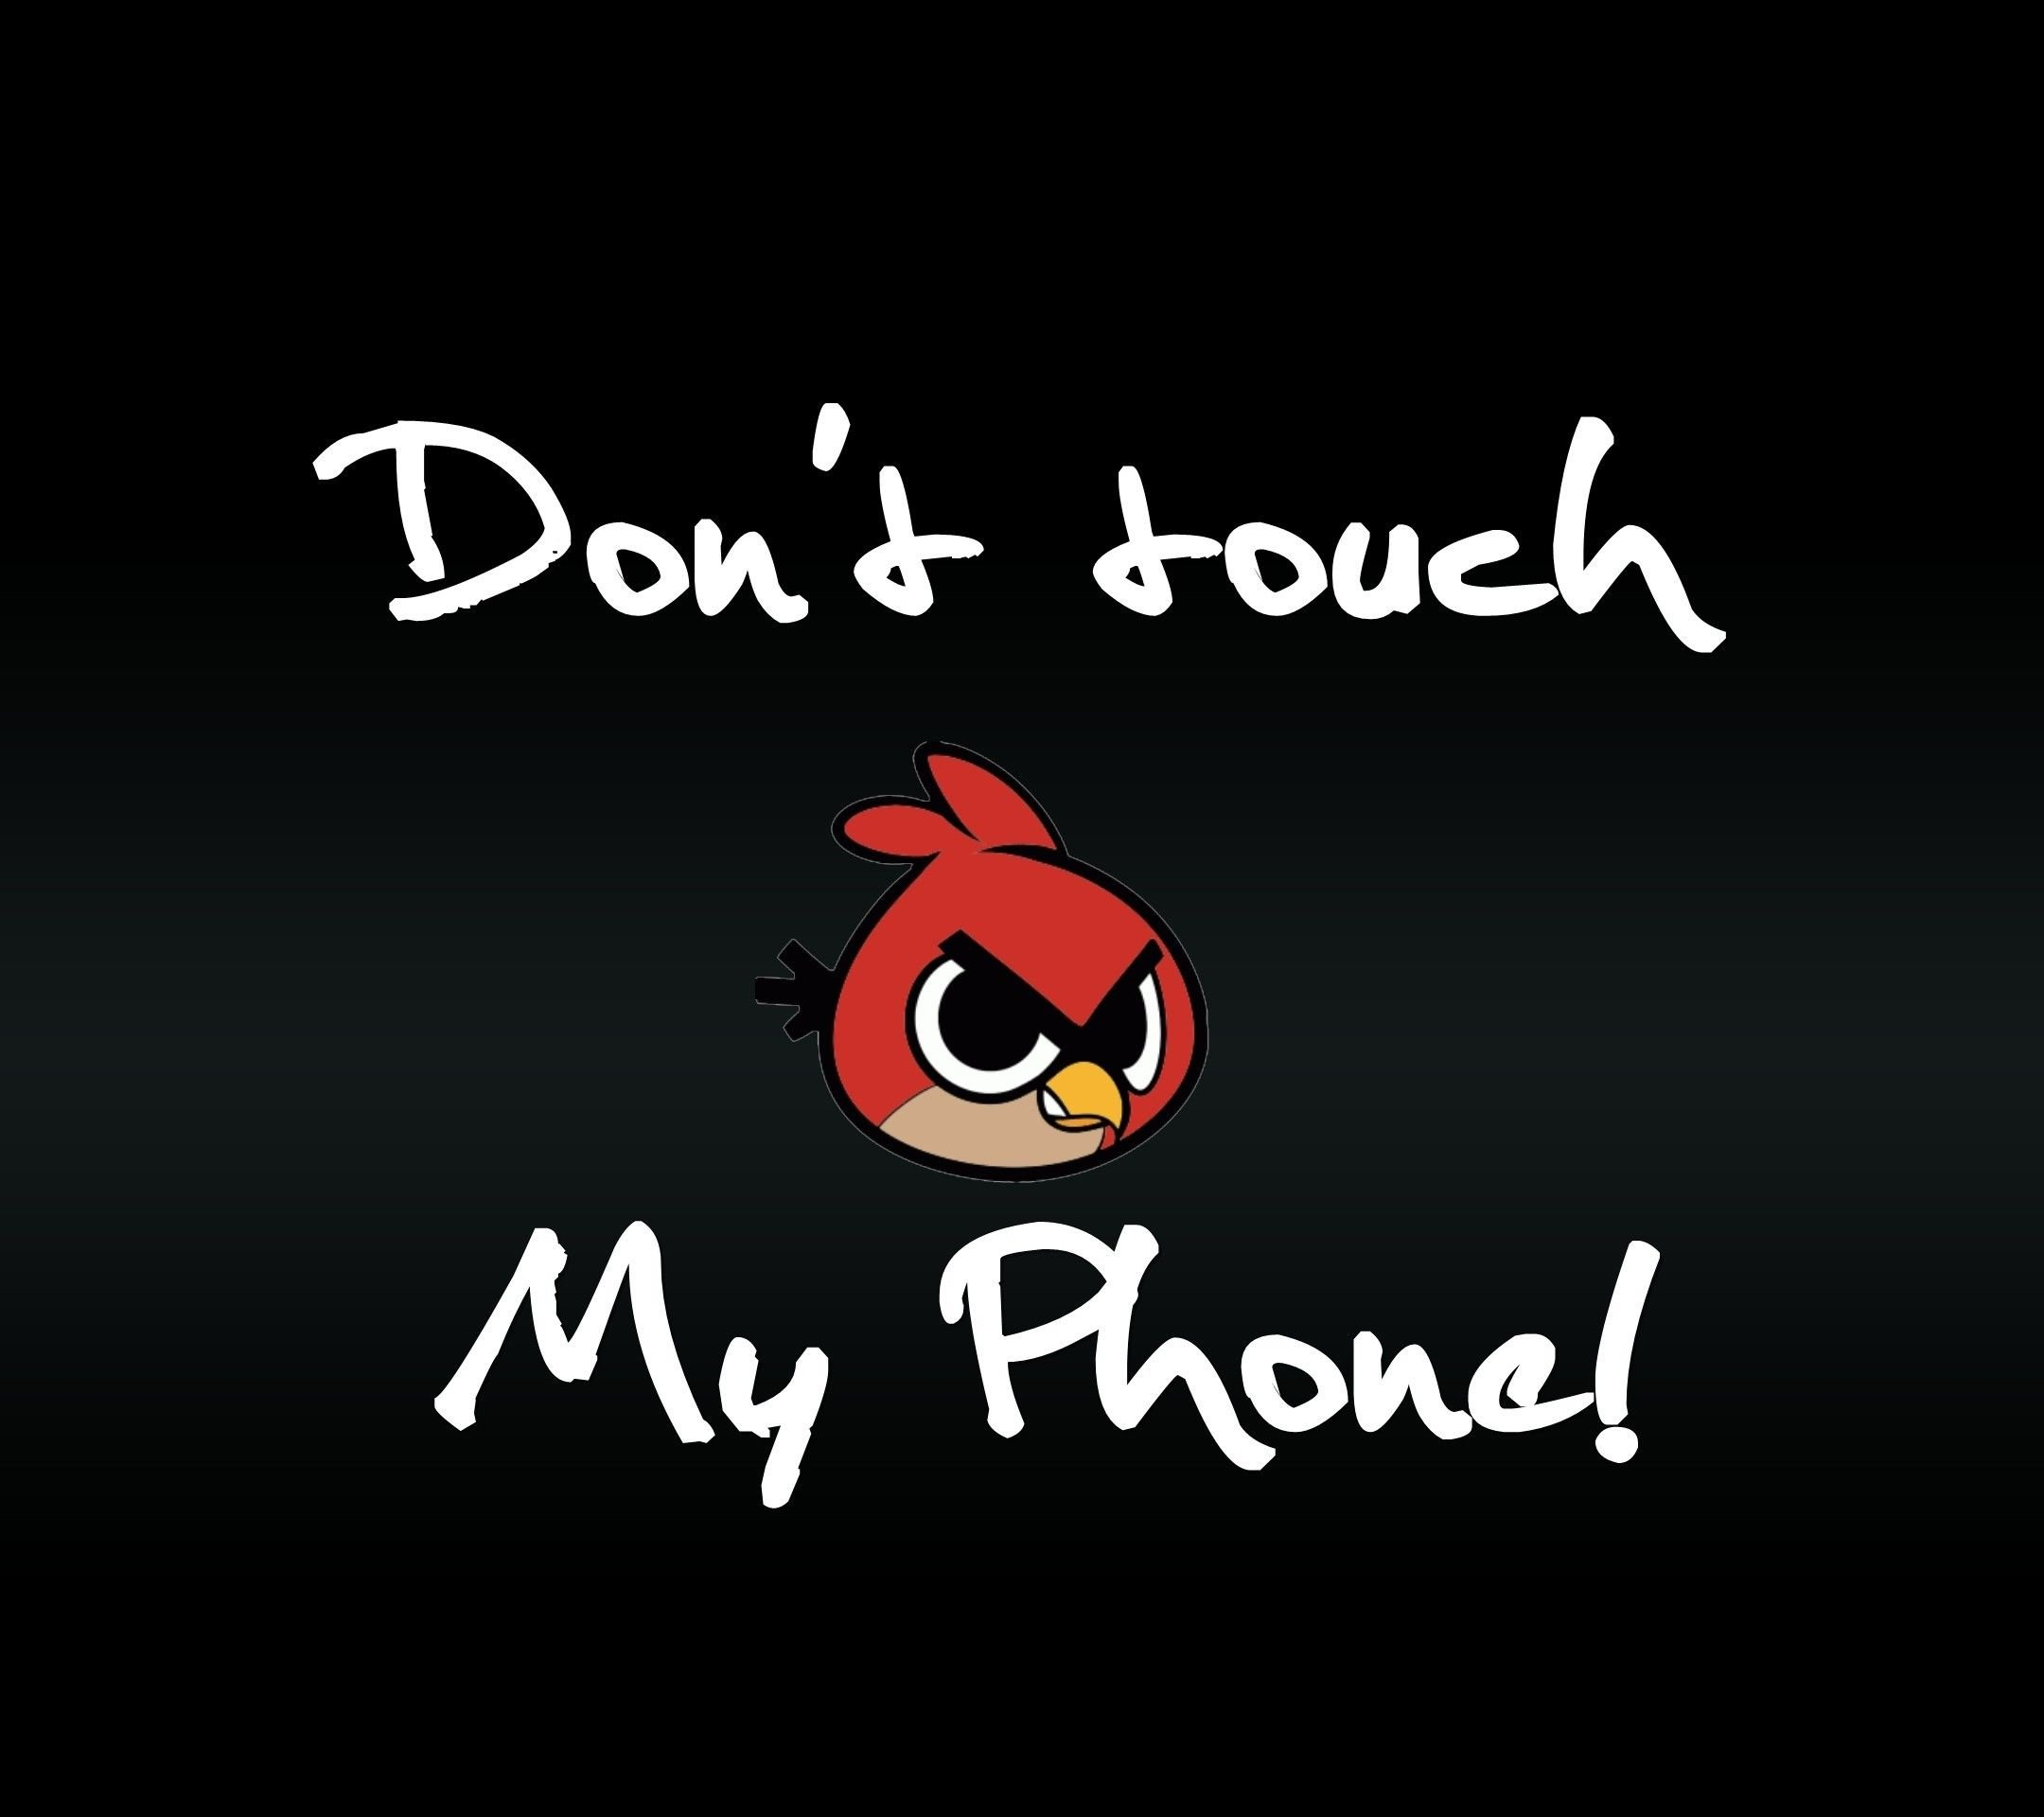 3d Don T Touch My Phone Wallpapers Top Free 3d Don T Touch My Phone Backgrounds Wallpaperaccess